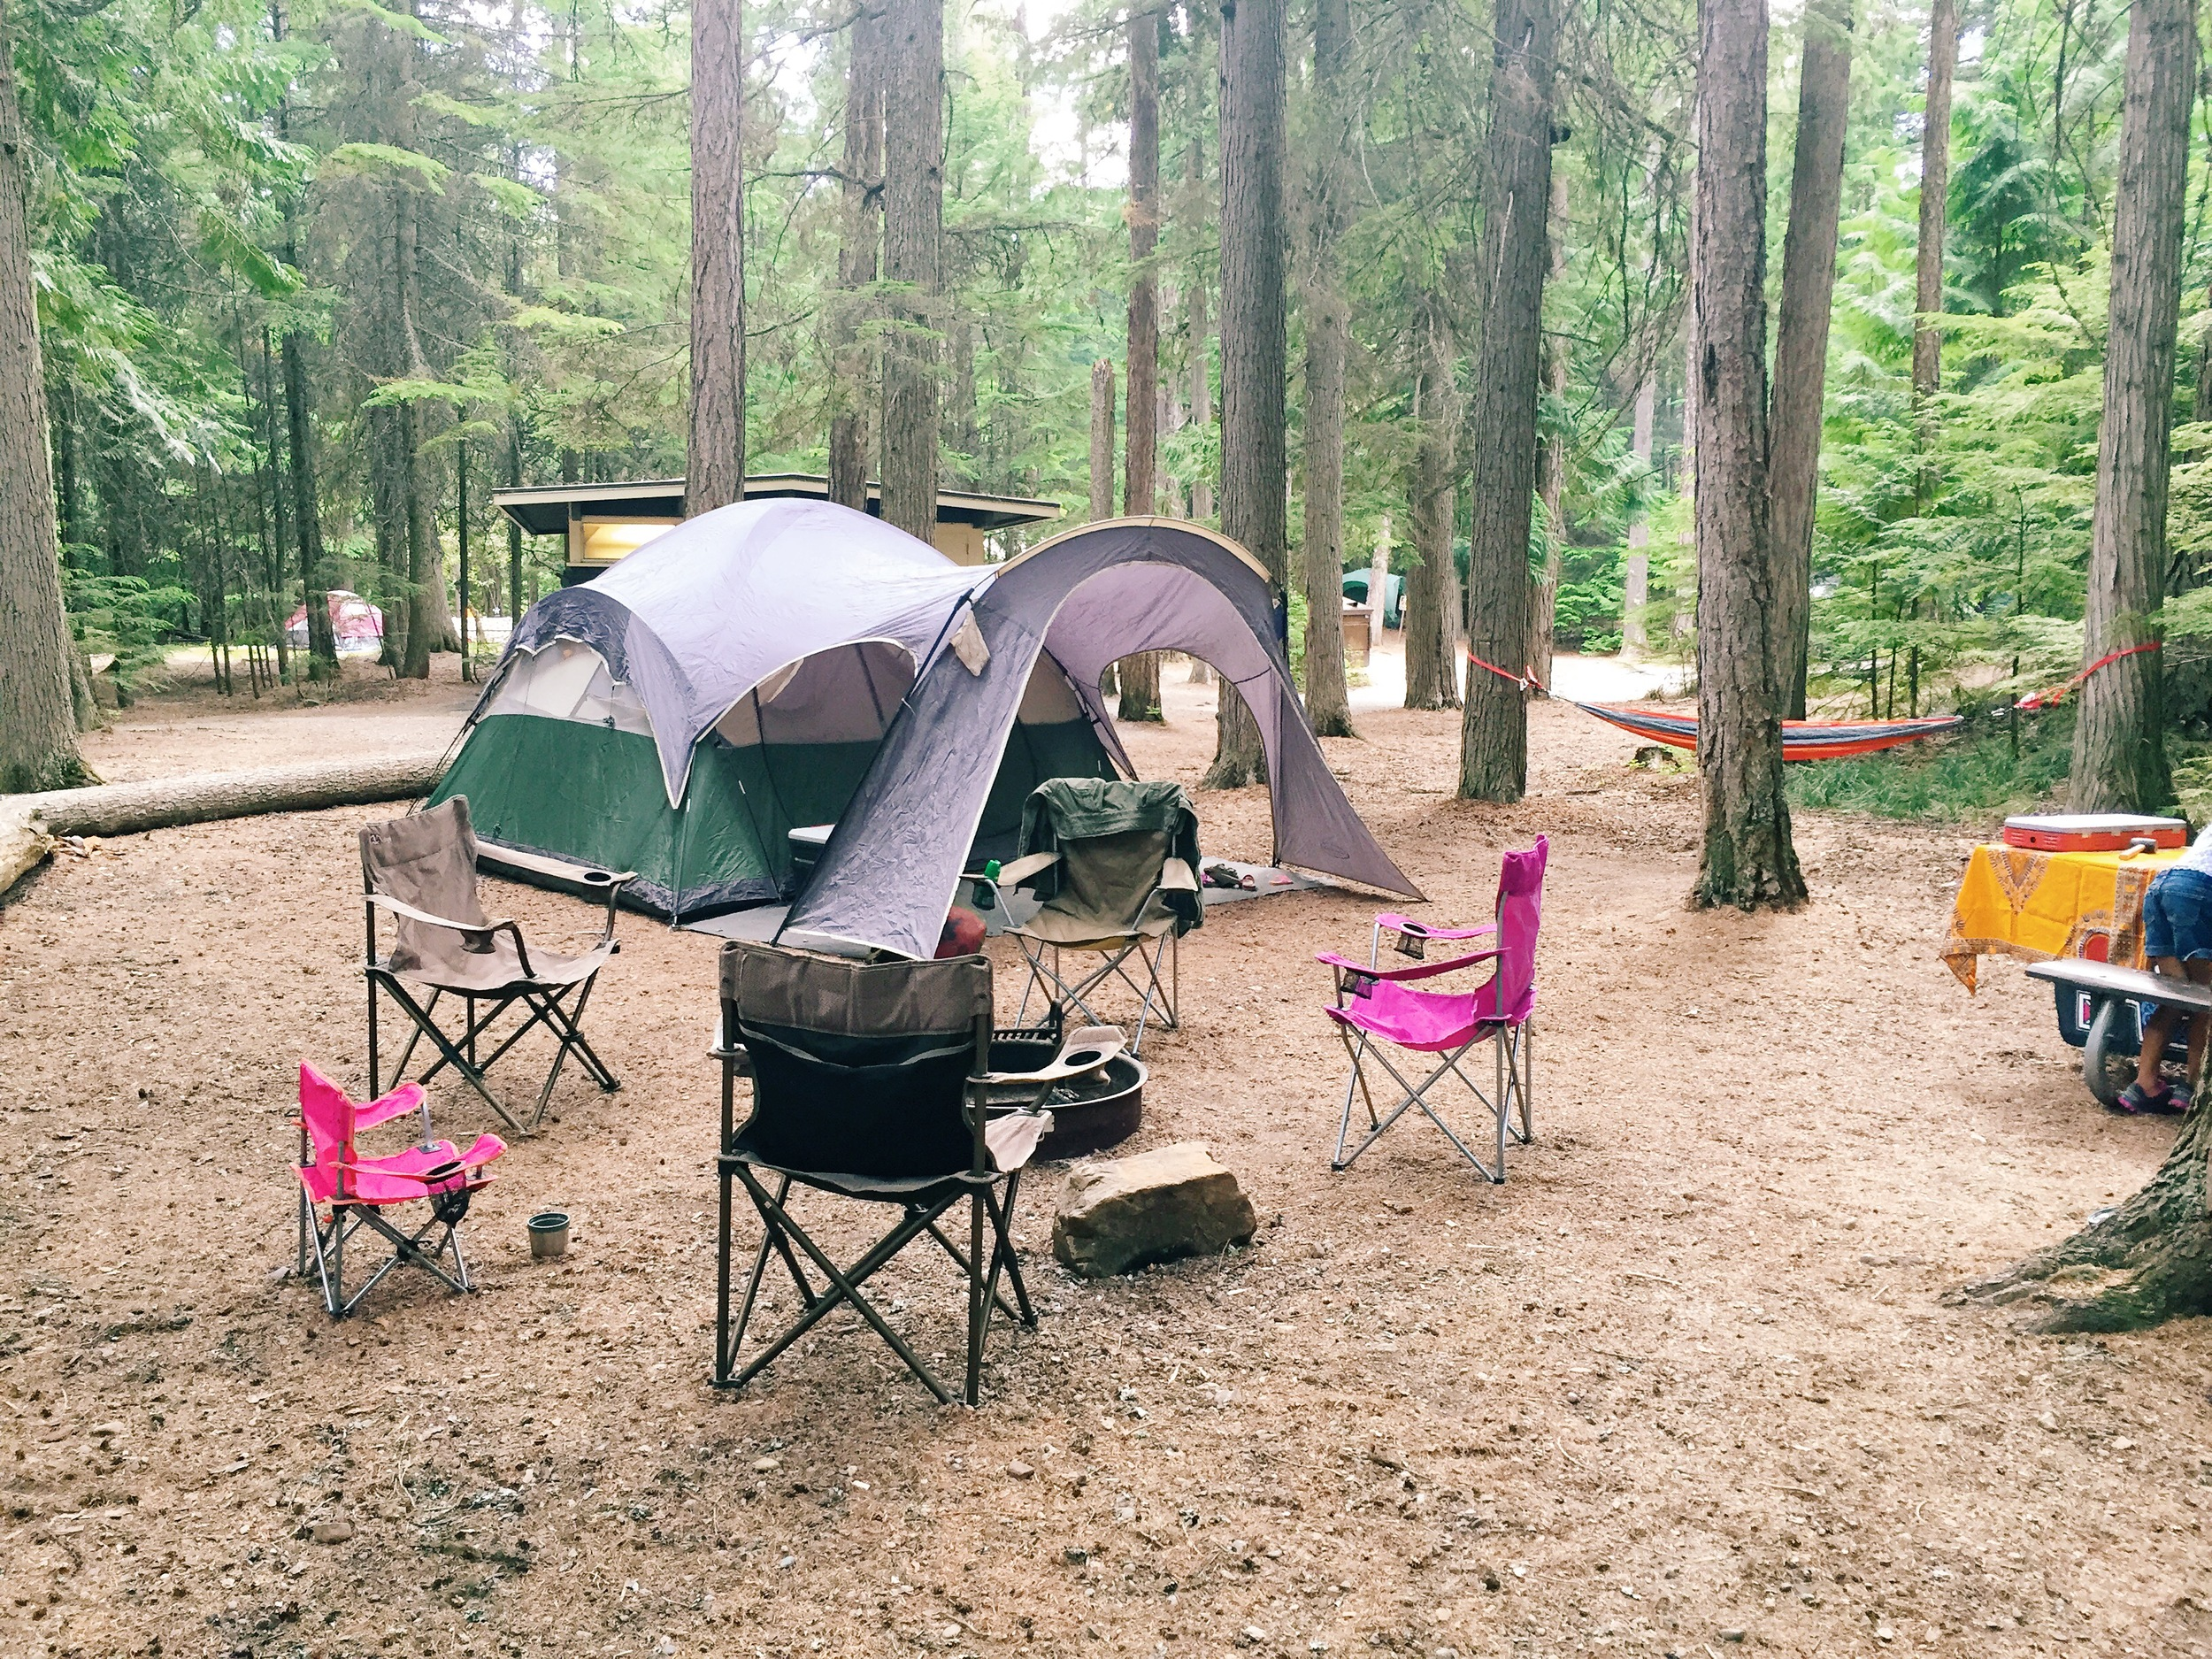 Our campsite. Too bad I spent most of the time being sickin the tent.